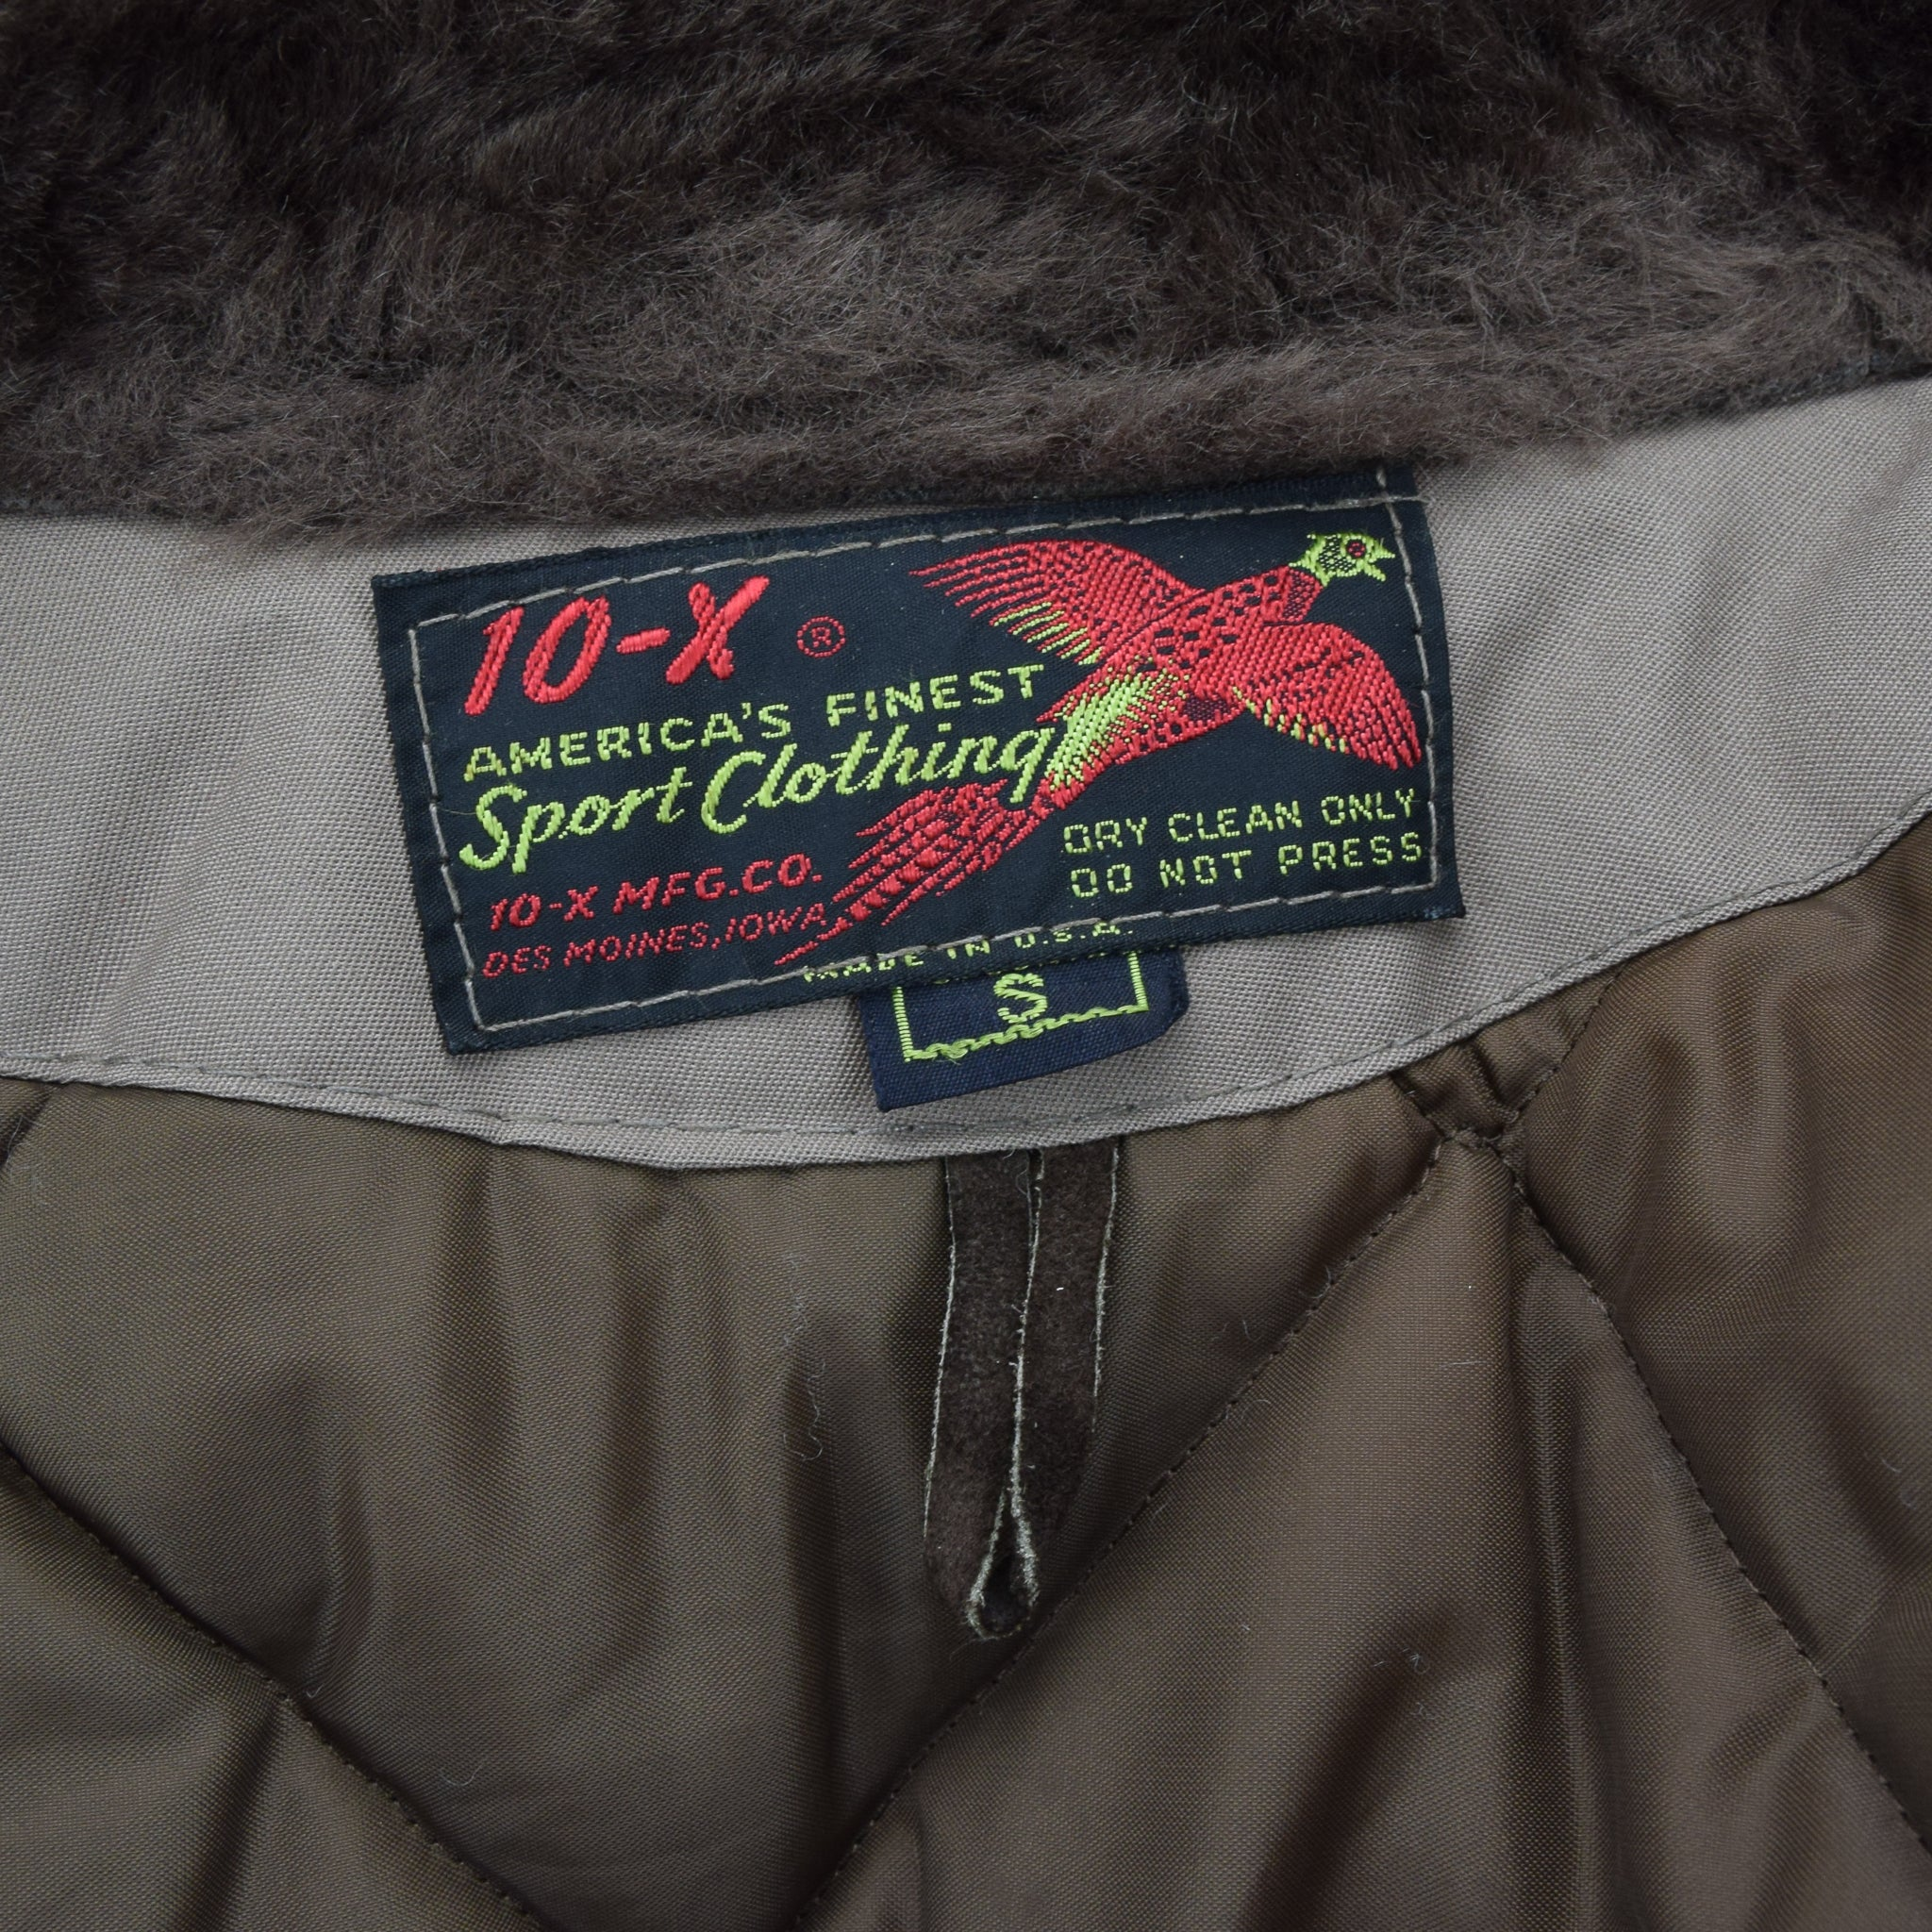 Vintage 70s 10-X Mfg Co USA Quilted Hunting Shooting Jacket Talon Zip XS / S label